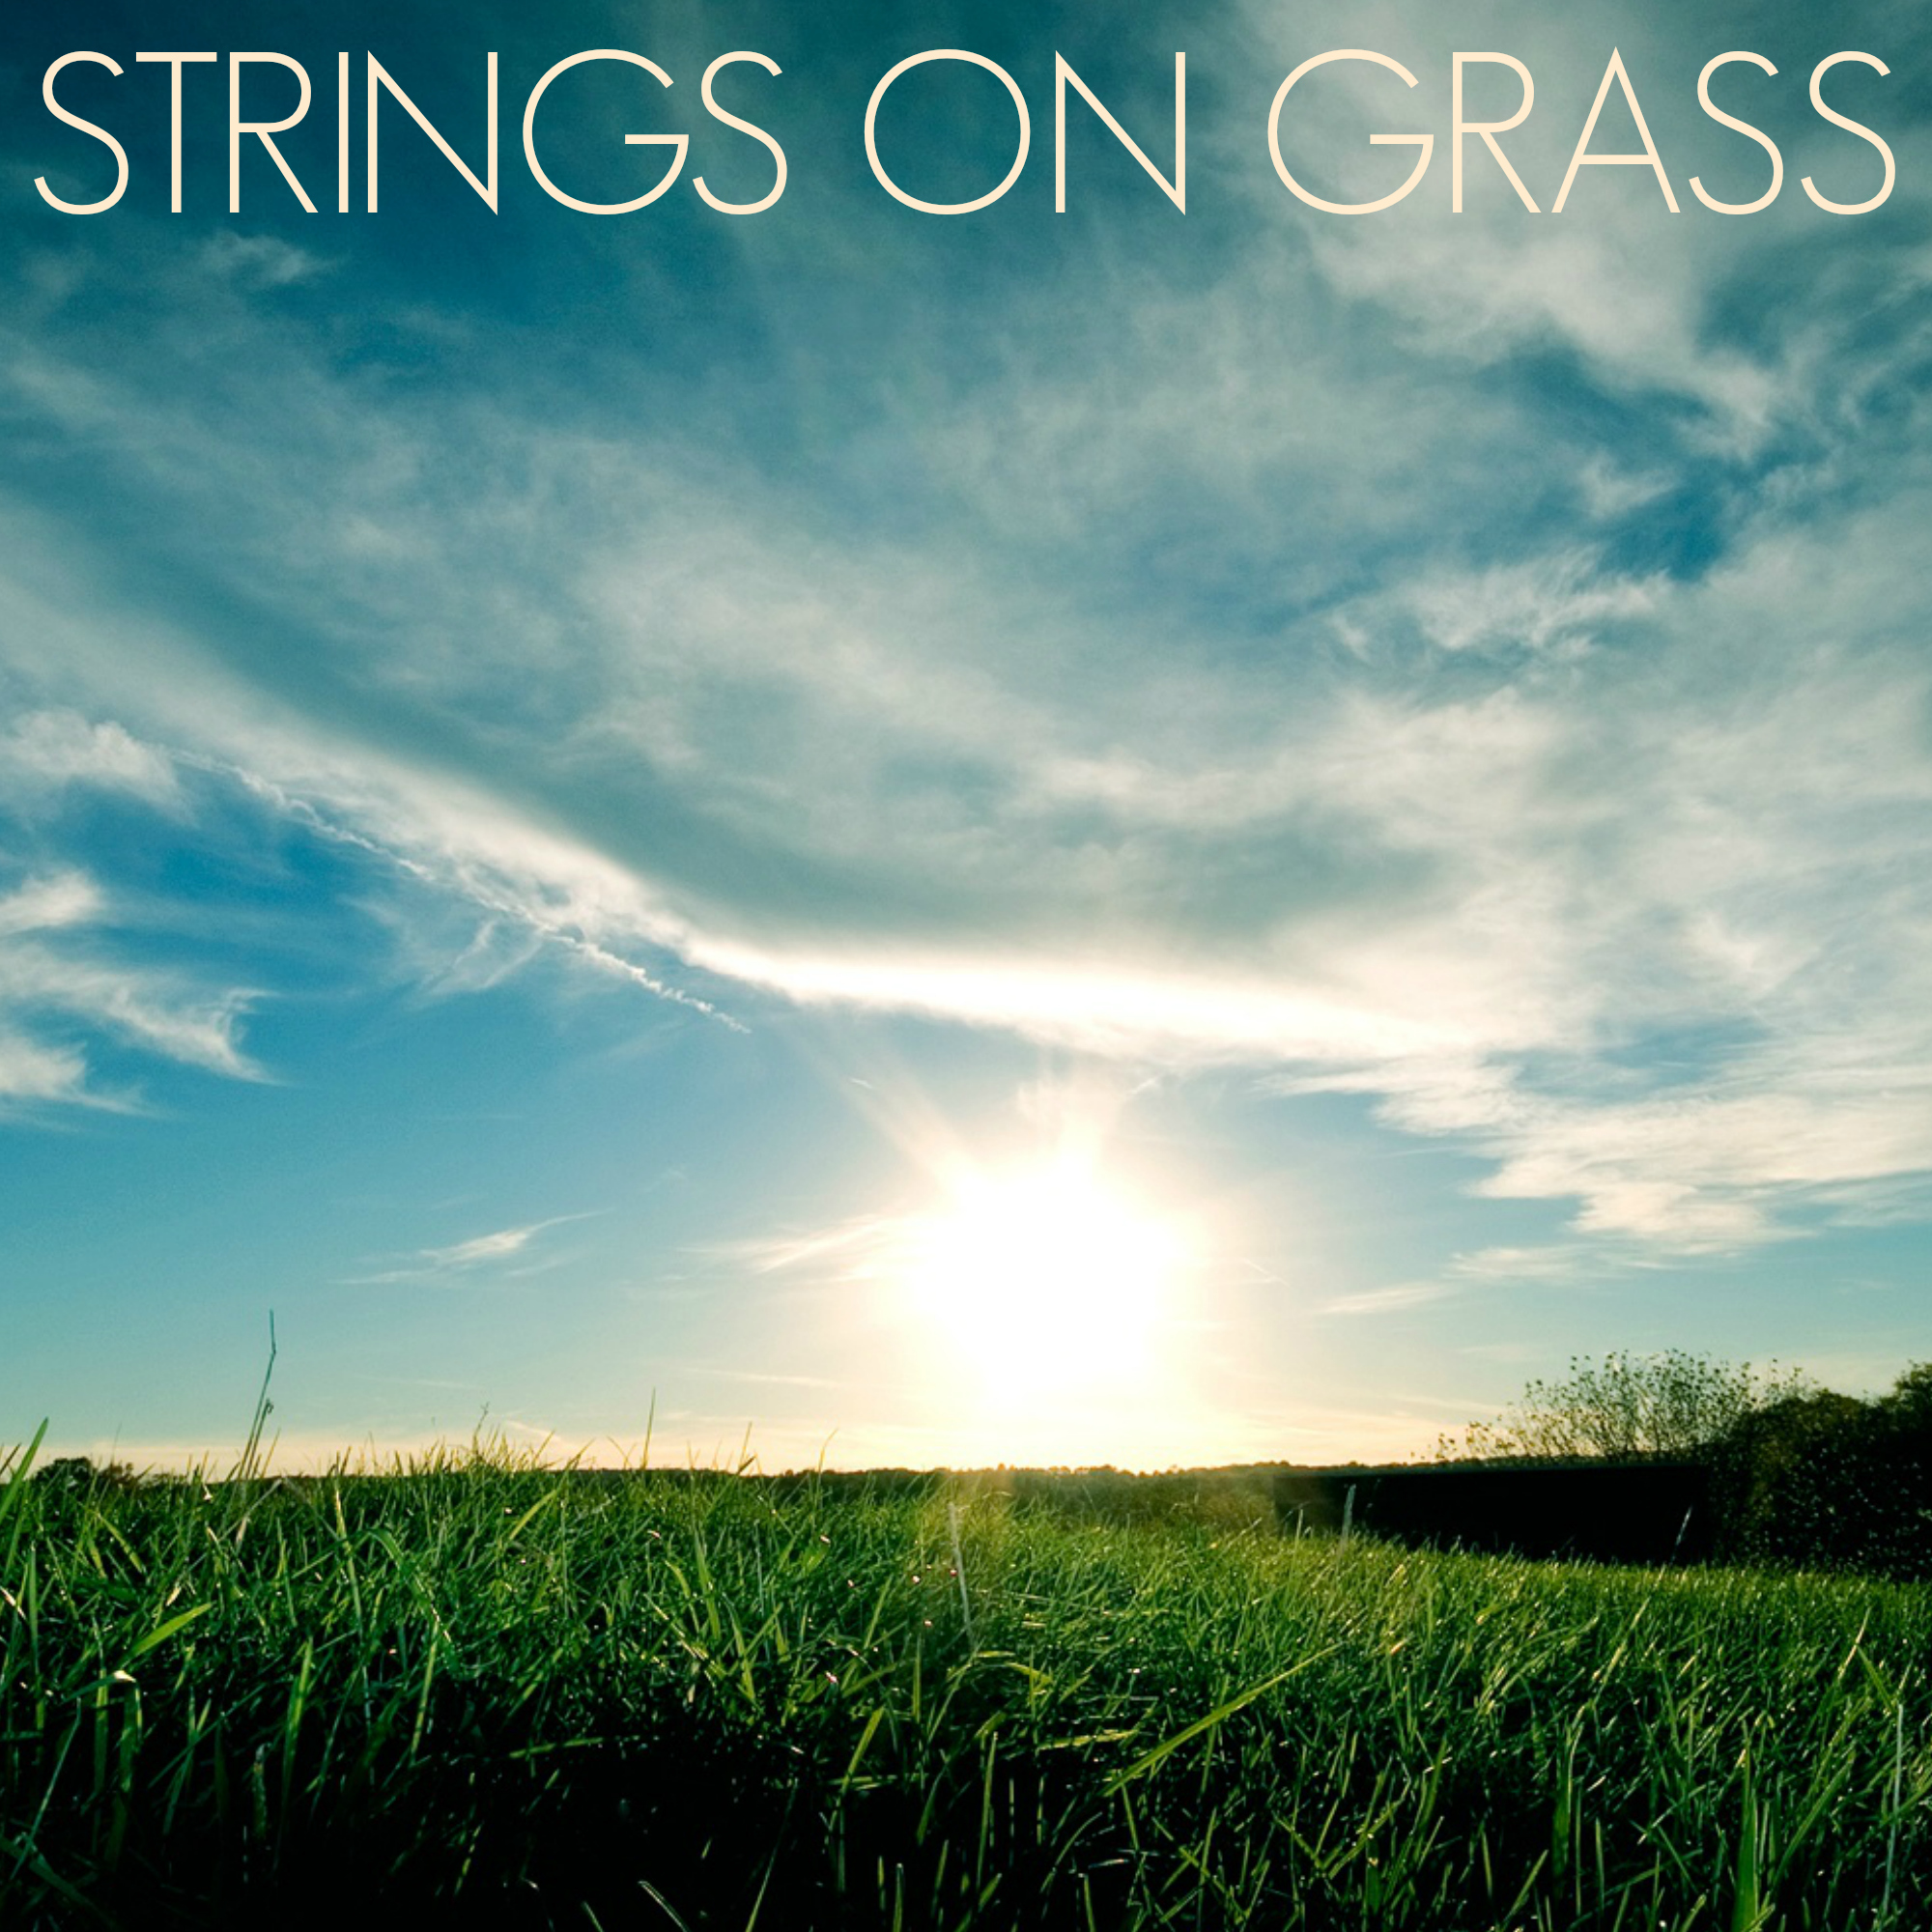 Strings on Grass featuring Guy Forsyth